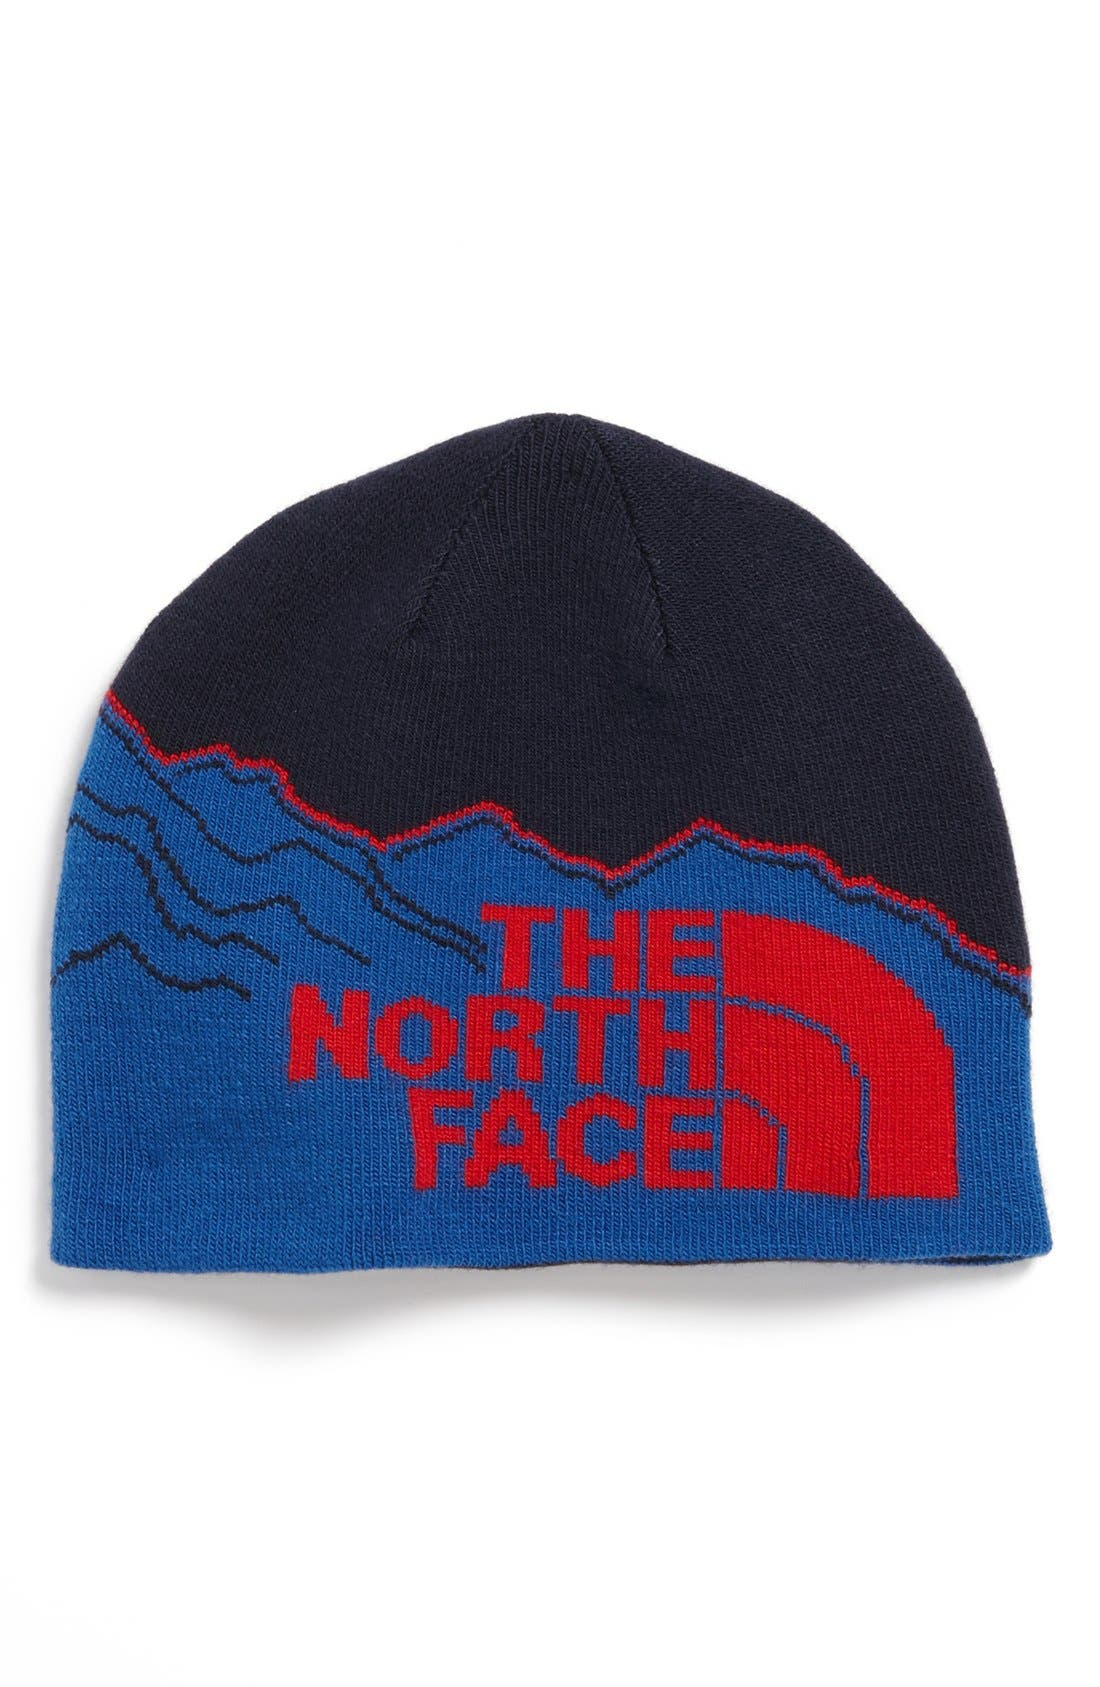 Alternate Image 1 Selected - The North Face 'Corefire' Reversible Beanie (Boys)